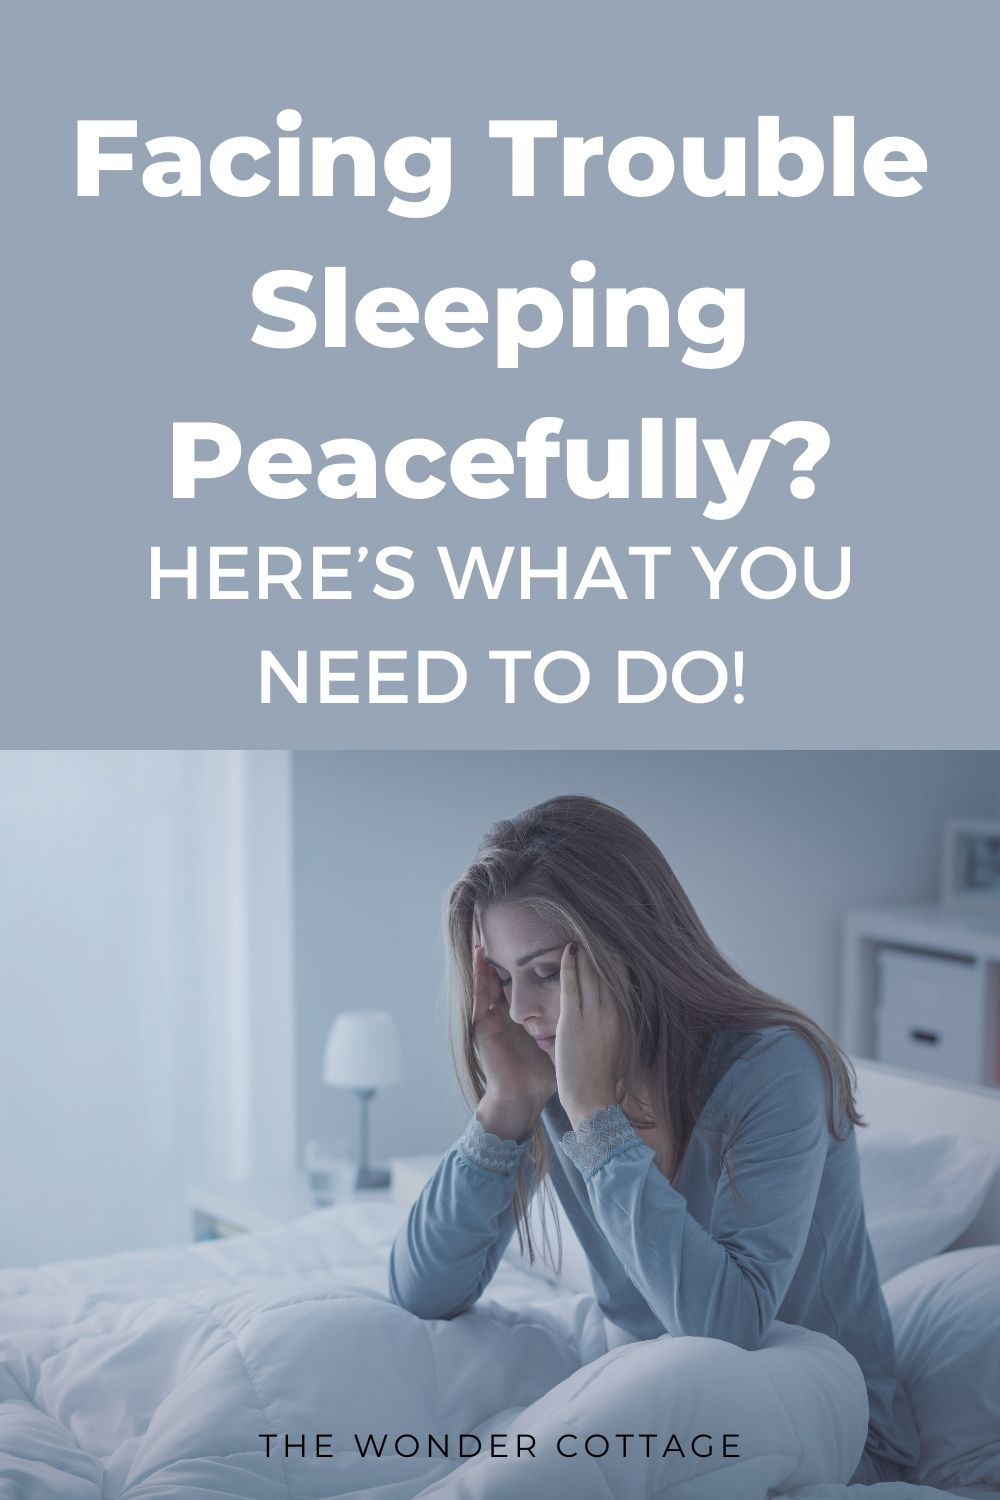 Facing trouble sleeping peacefully? Here's what you need to do